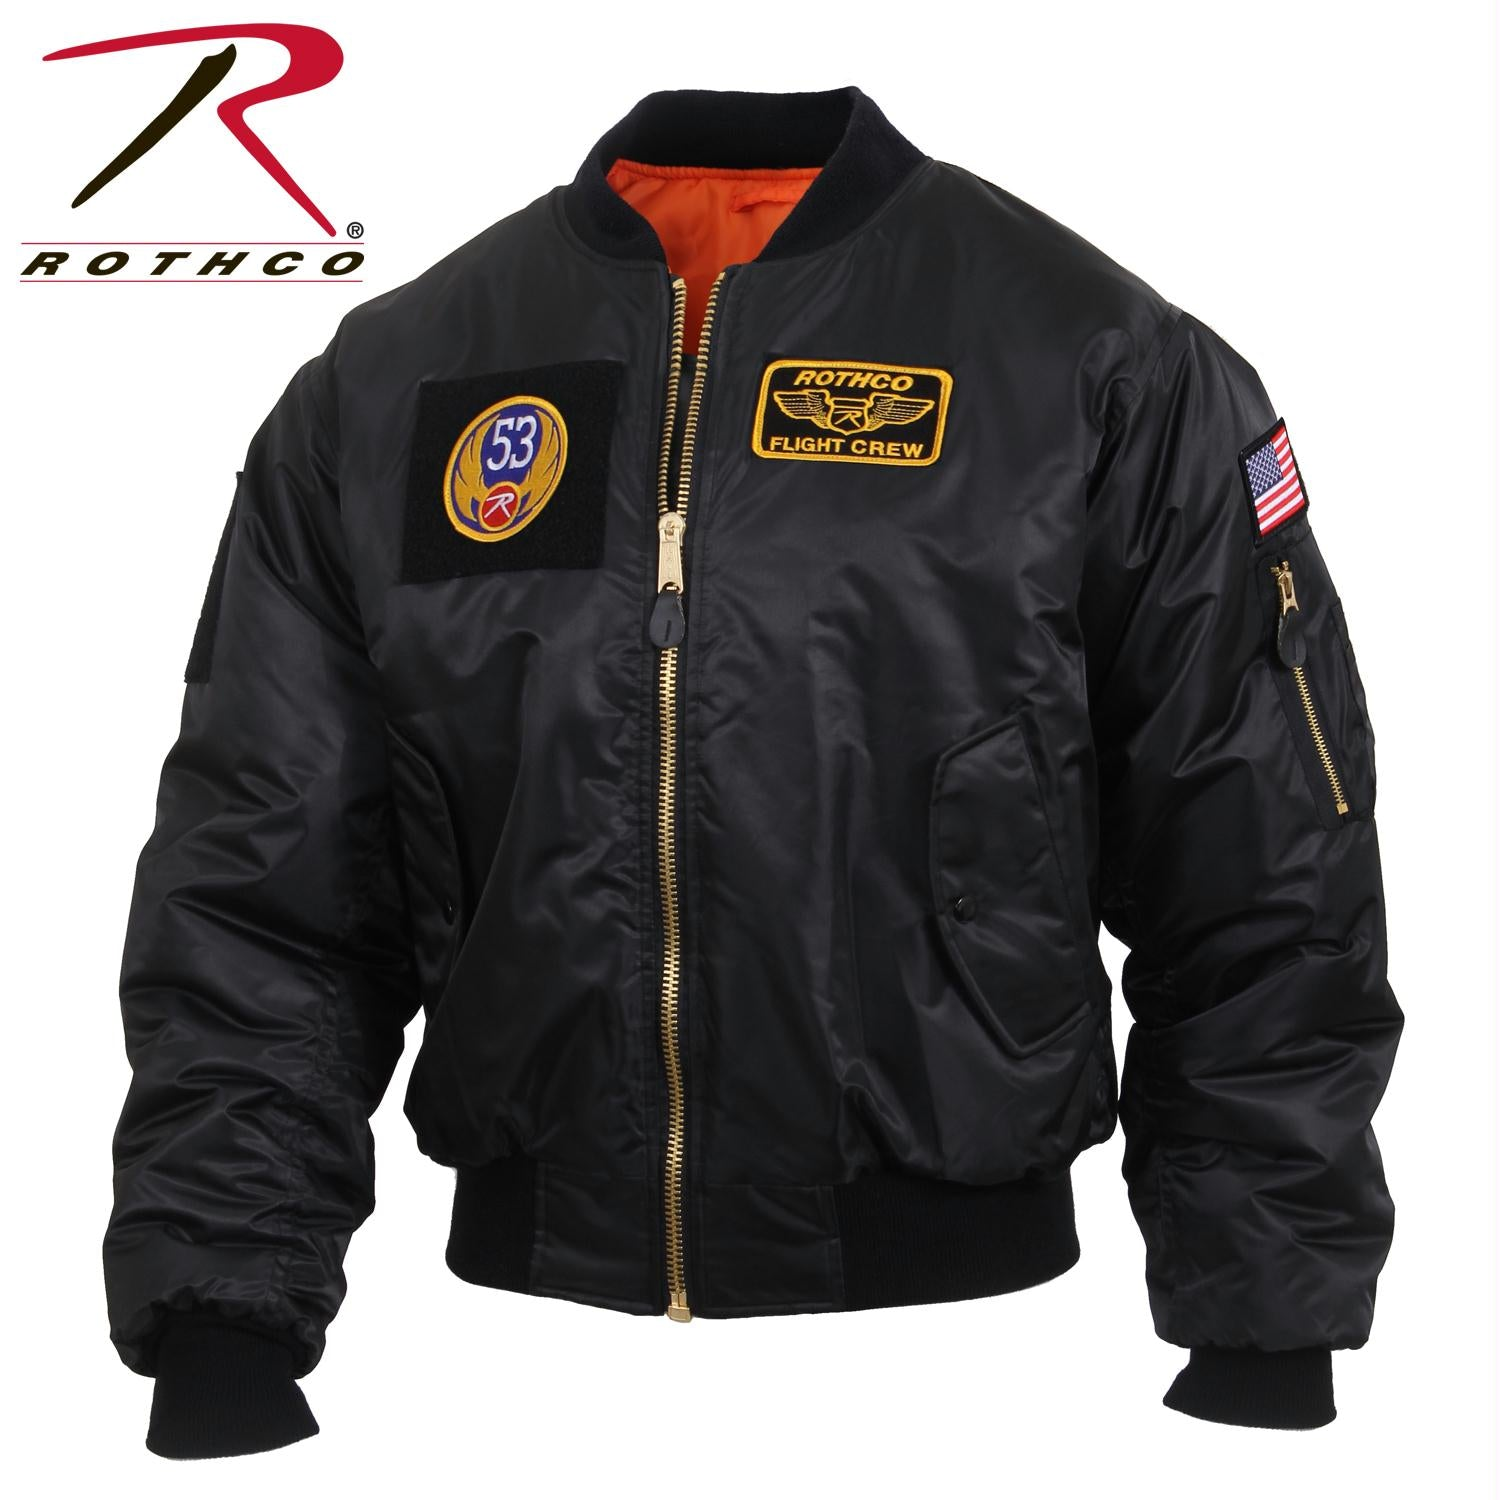 Rothco MA-1 Flight Jacket with Patches - Black / S